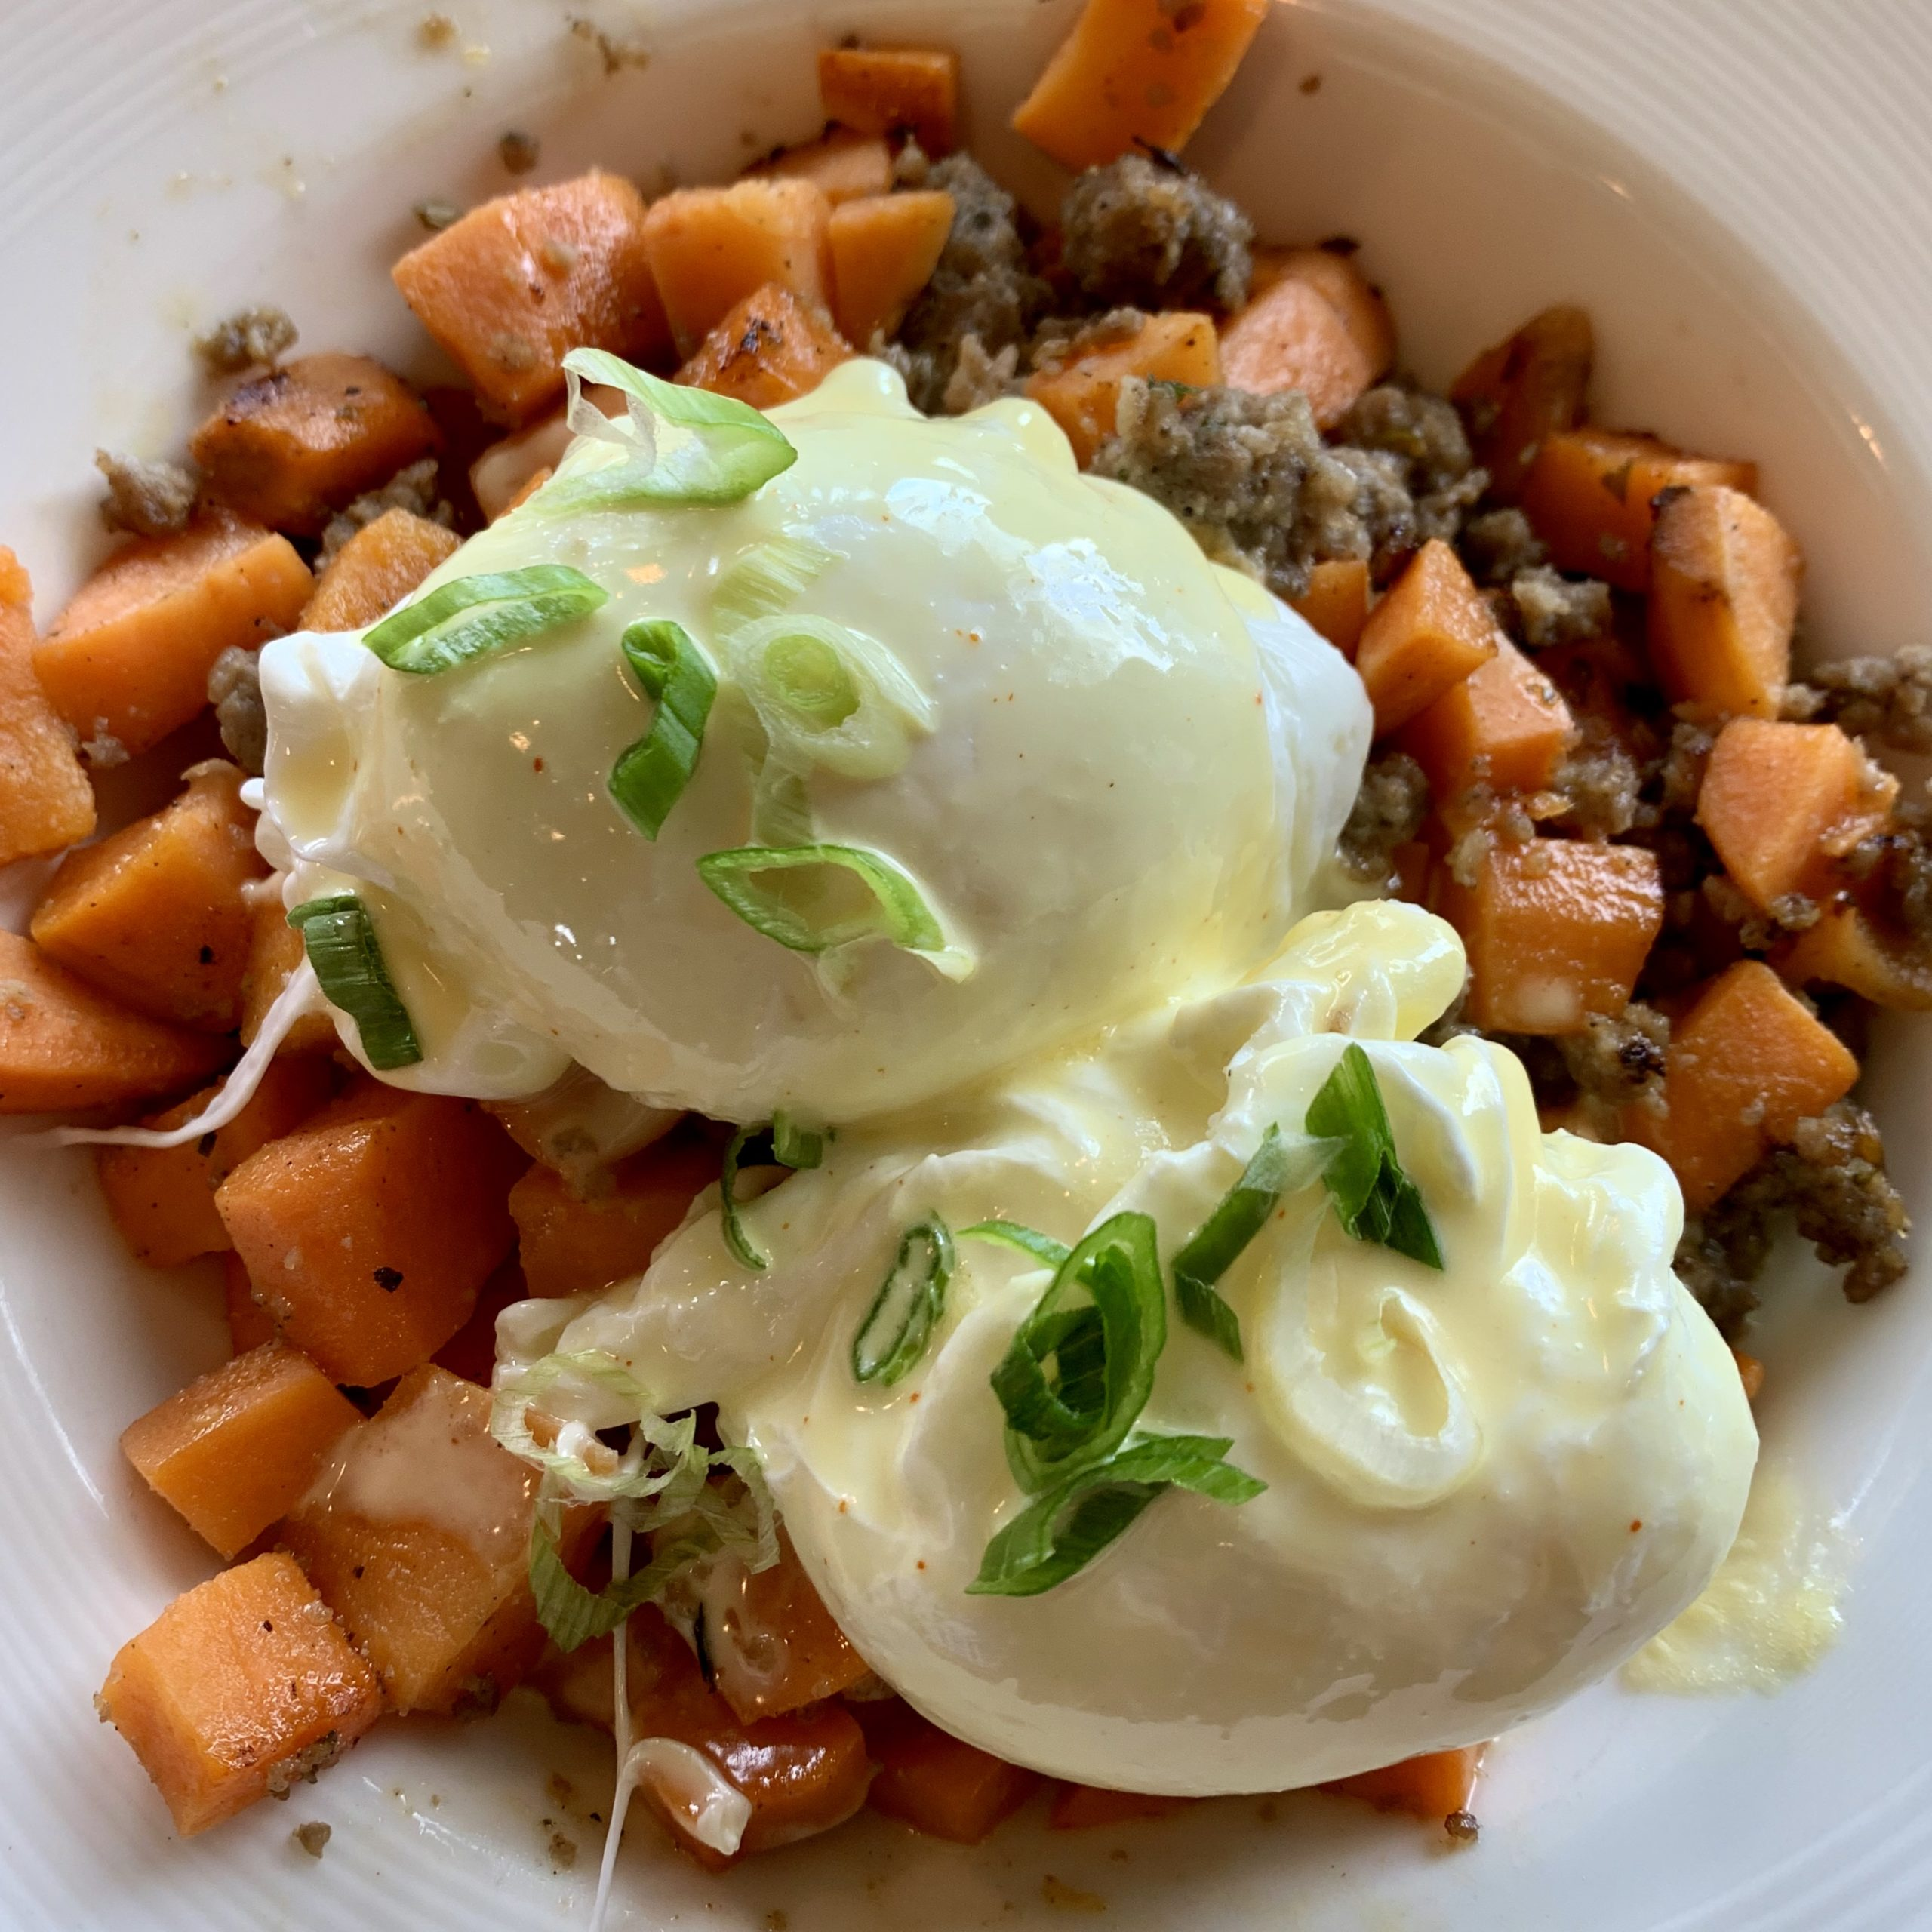 Sweet Potato Hash with sausage and eggs is a meal I had while on a girl's weekend up in Petosky, Michigan last fall.